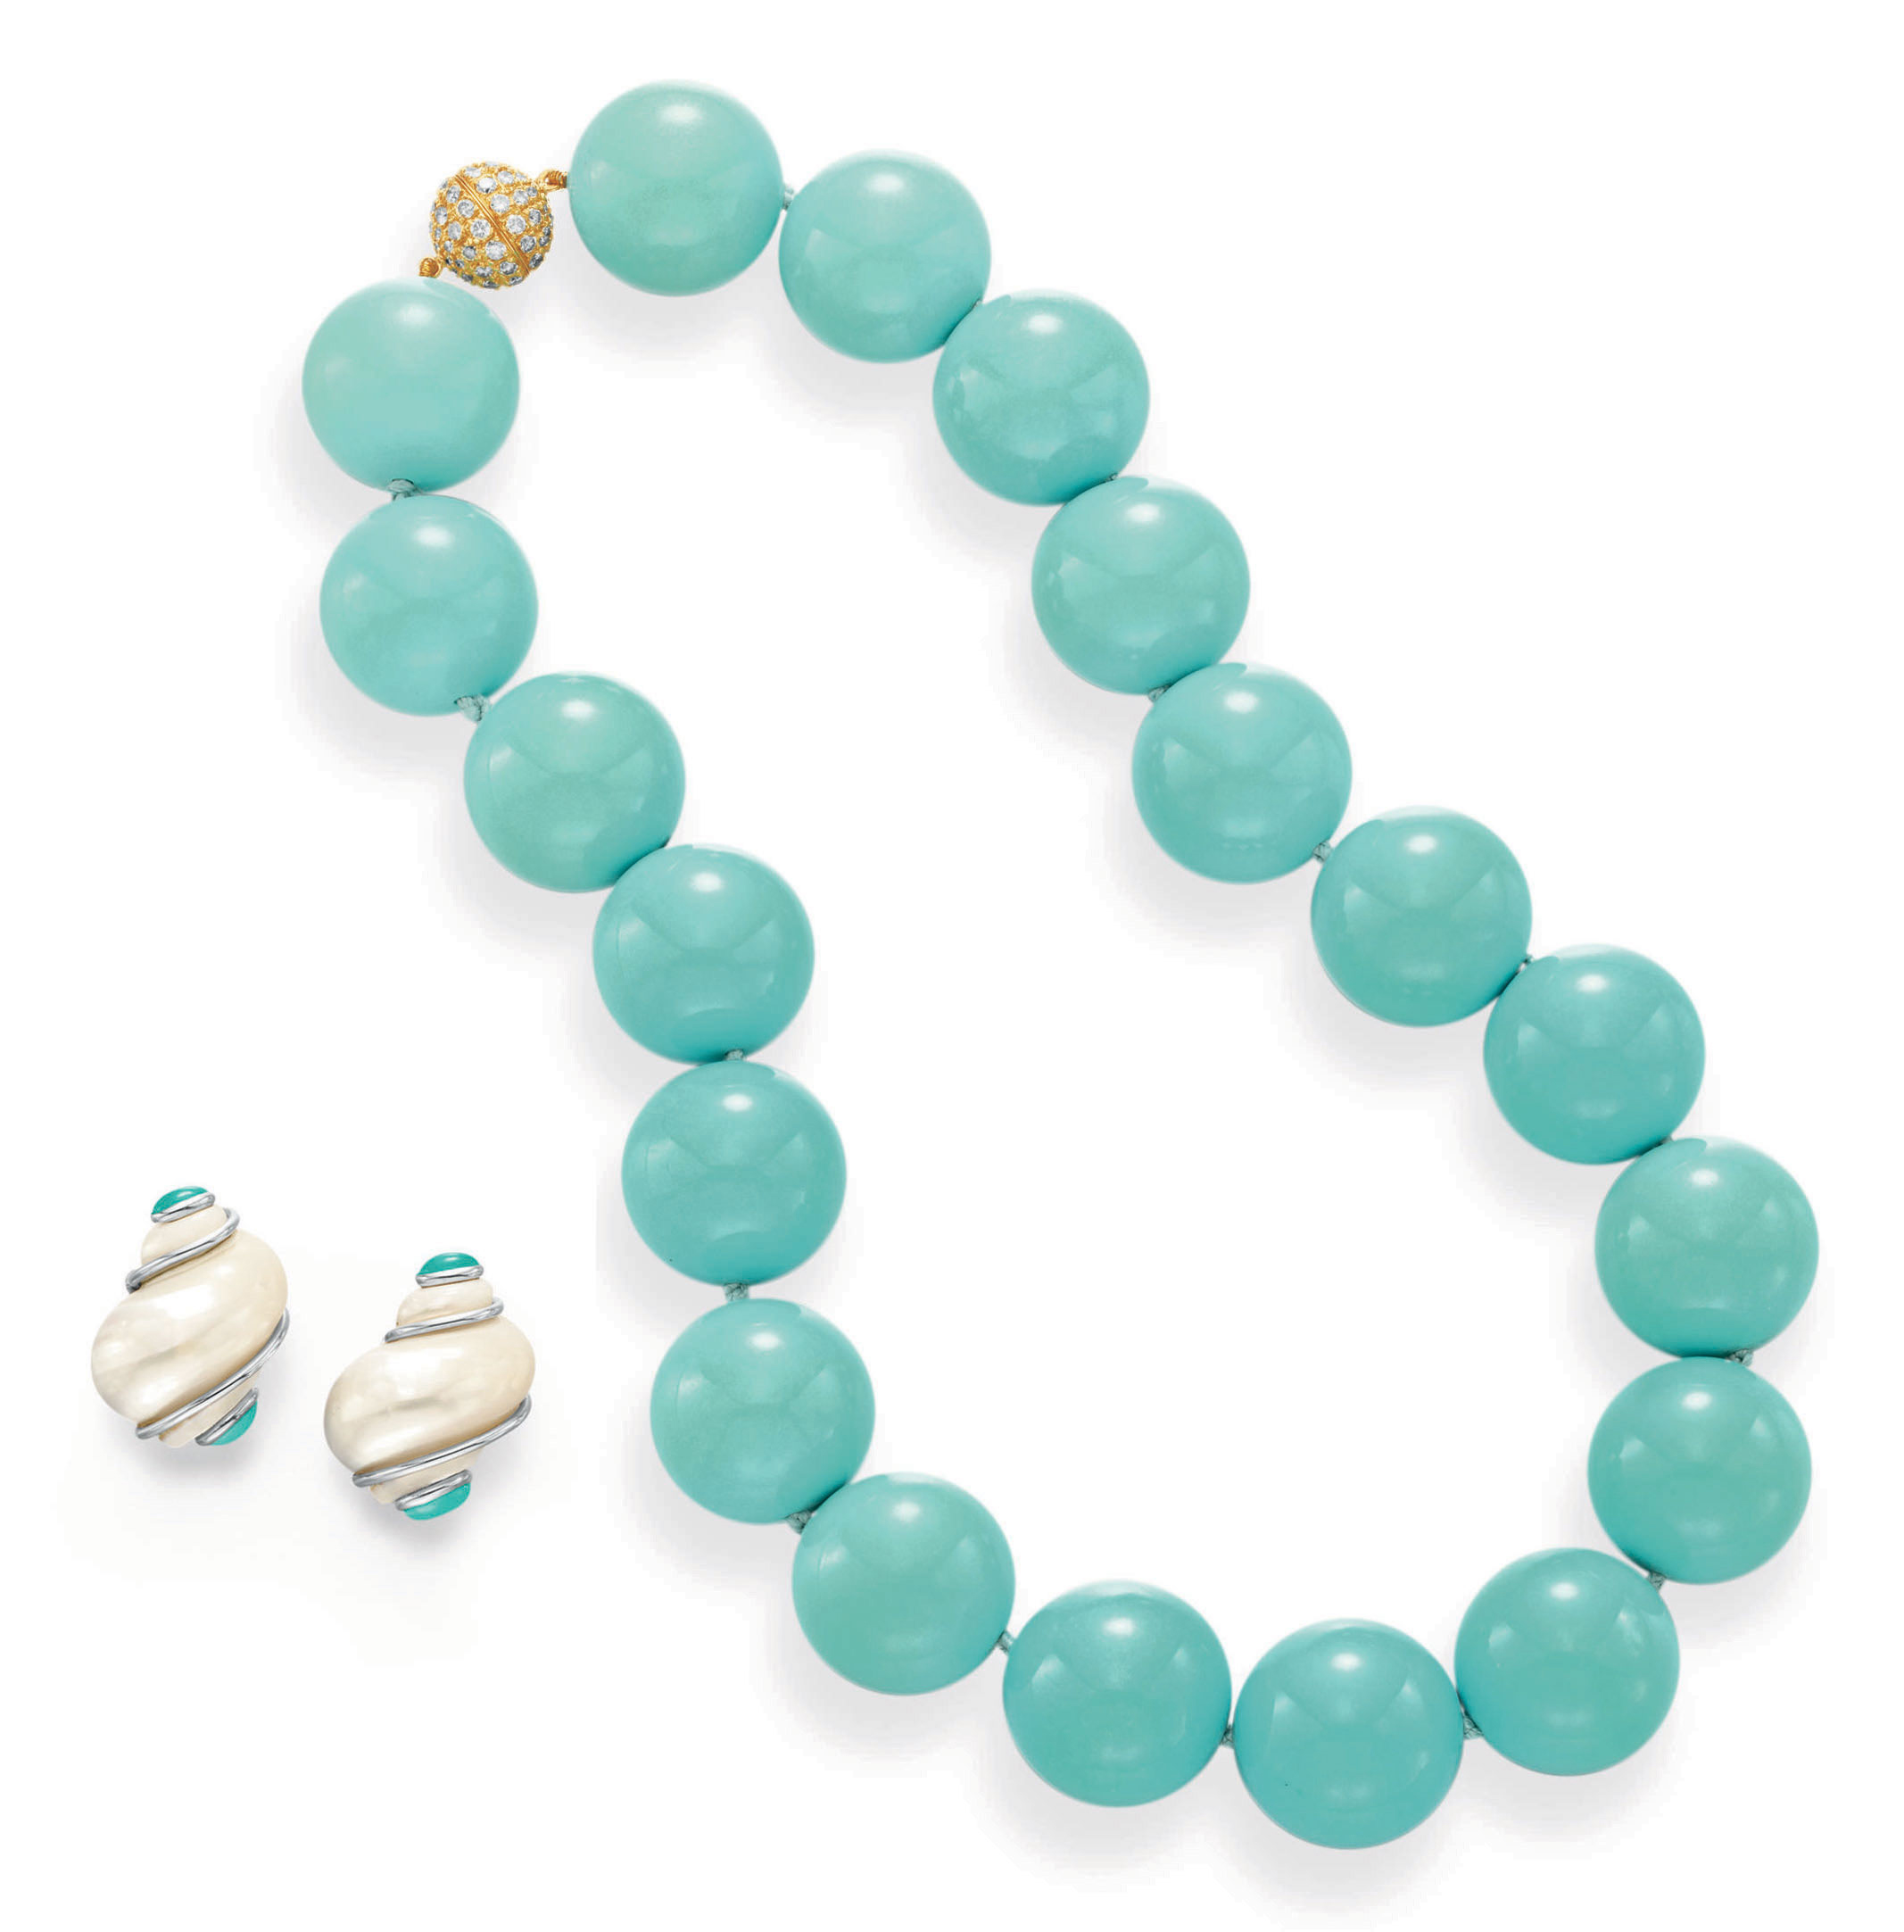 ~A GROUP OF TURQUOISE, MOTHER-OF-PEARL AND DIAMOND JEWELRY